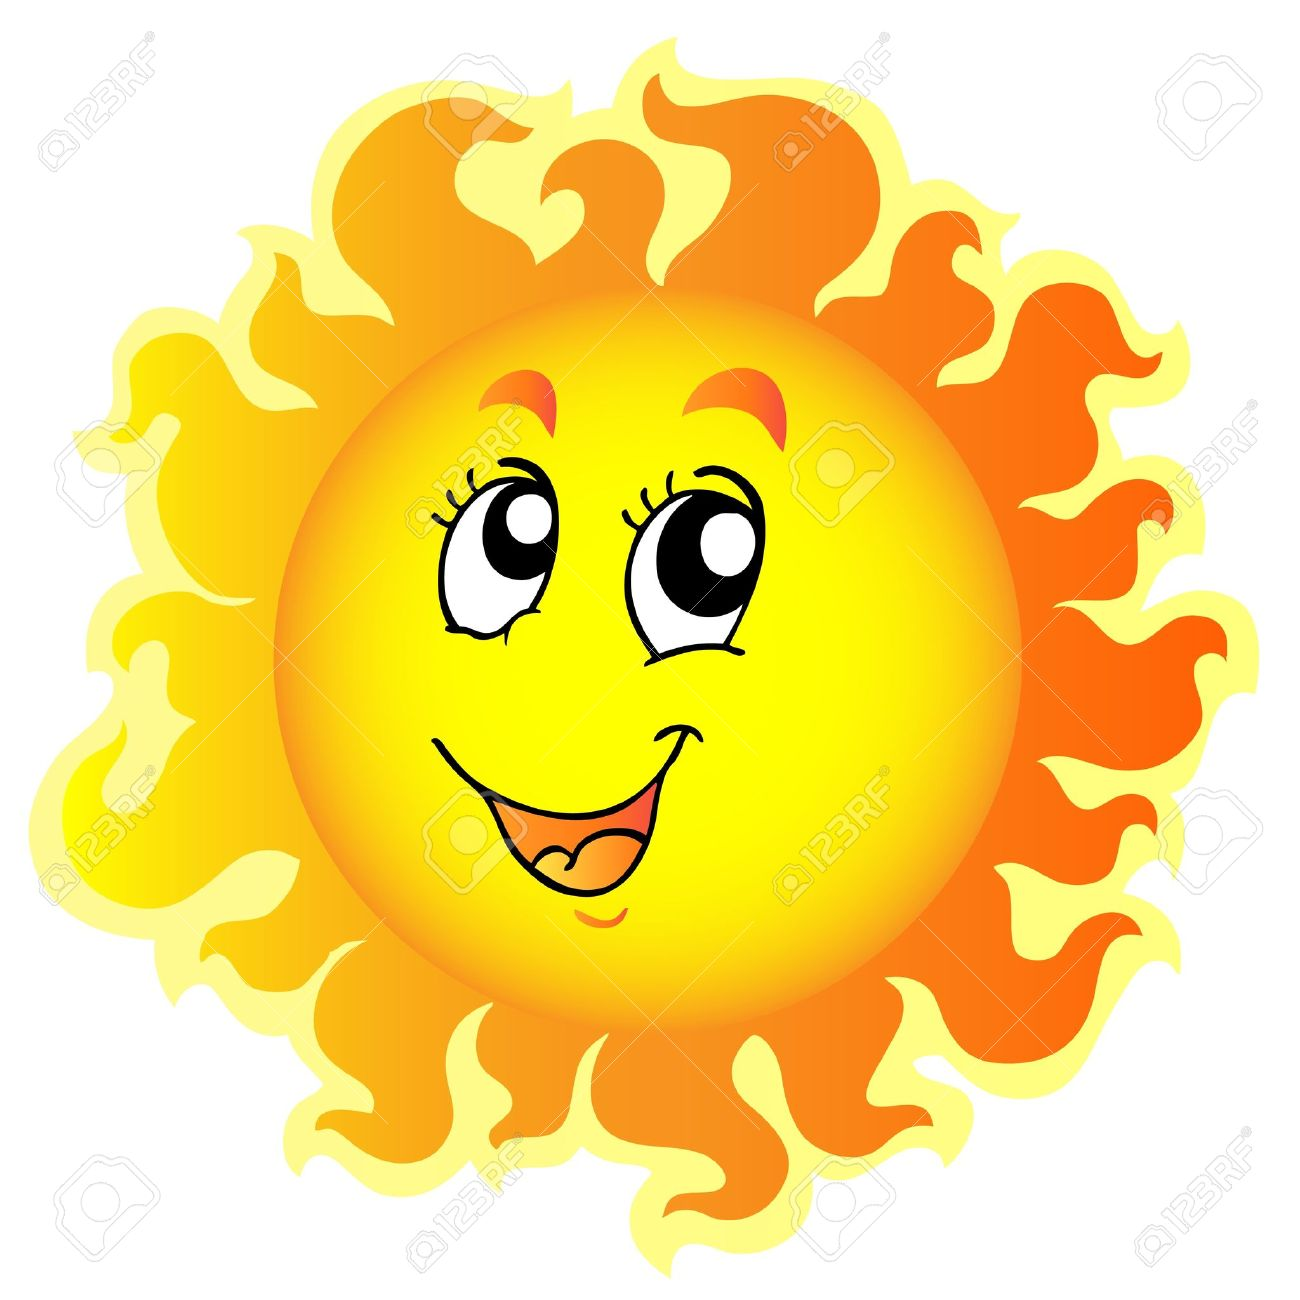 Uncategorized Sun Drawing cute happy sun illustration royalty free cliparts vectors and stock vector 8475495